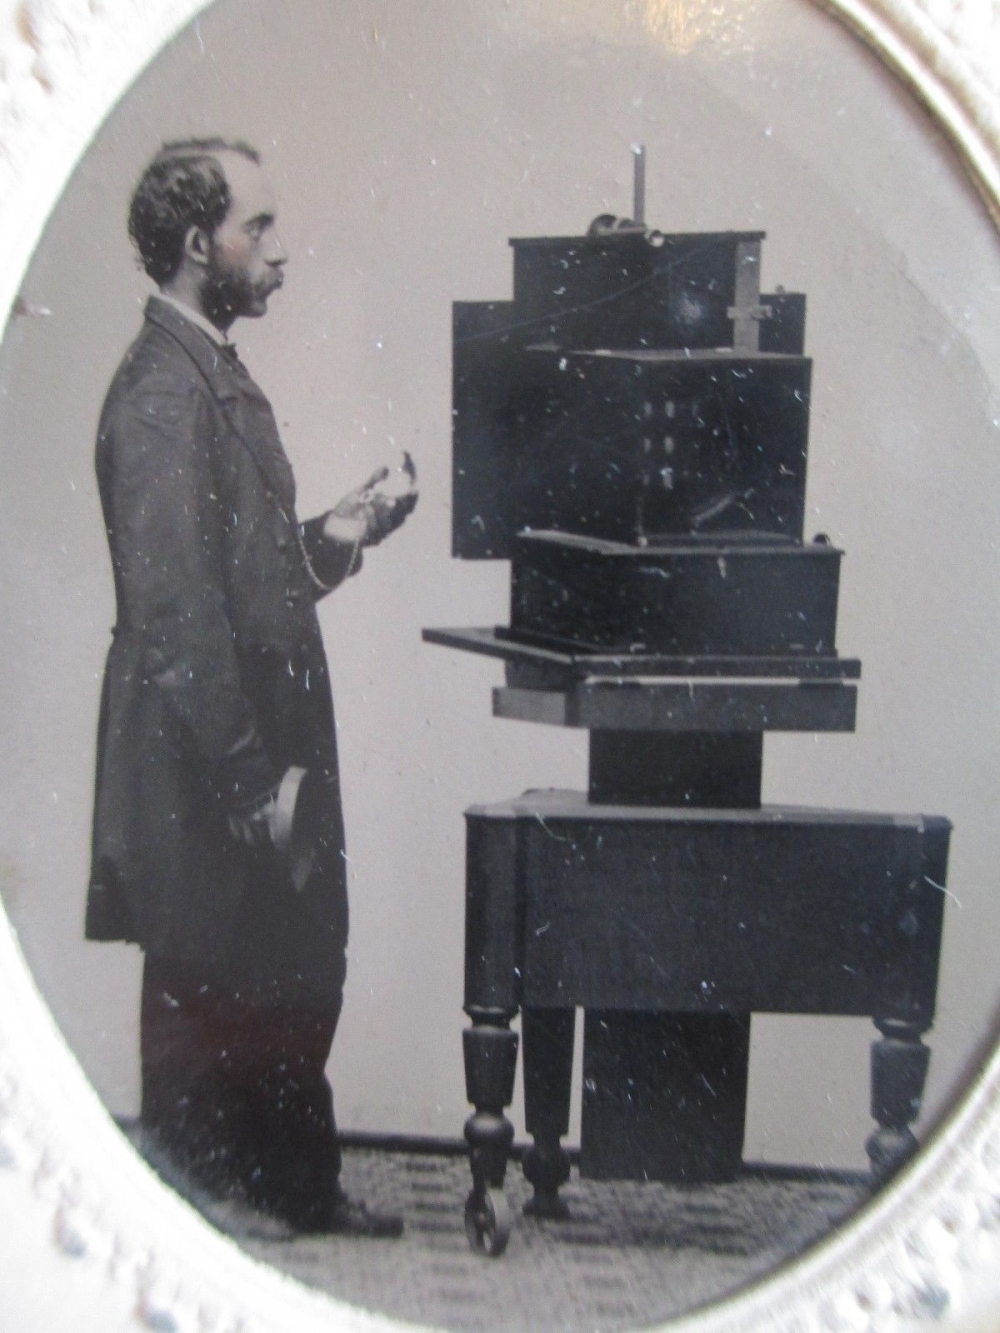 Simon Wing with a daguerreotype camera, c1860, Courtesy: Wikimedia Commons